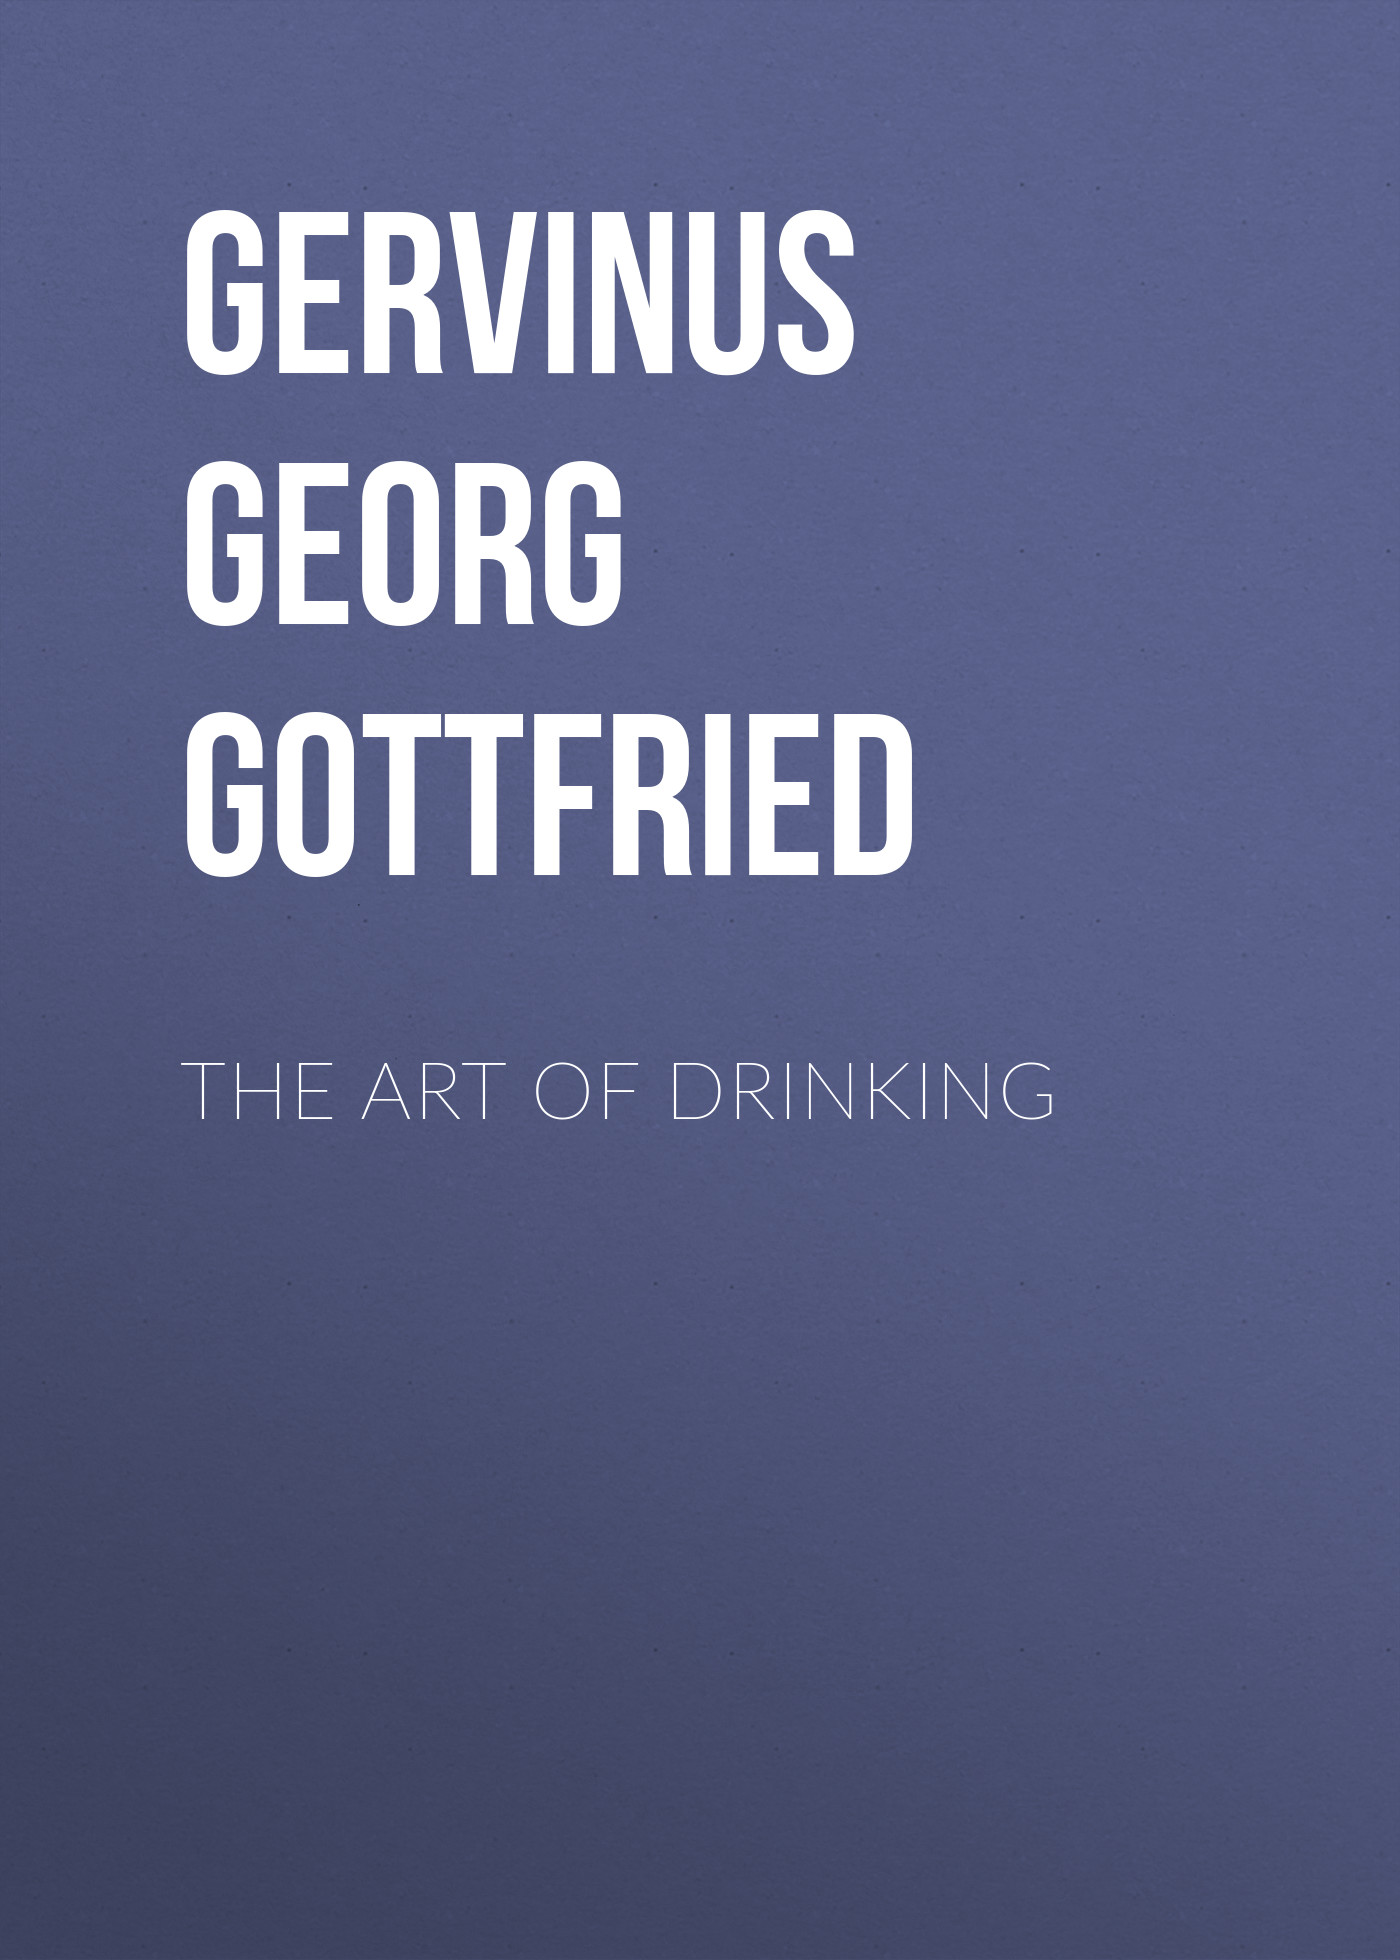 Gervinus Georg Gottfried The Art of Drinking